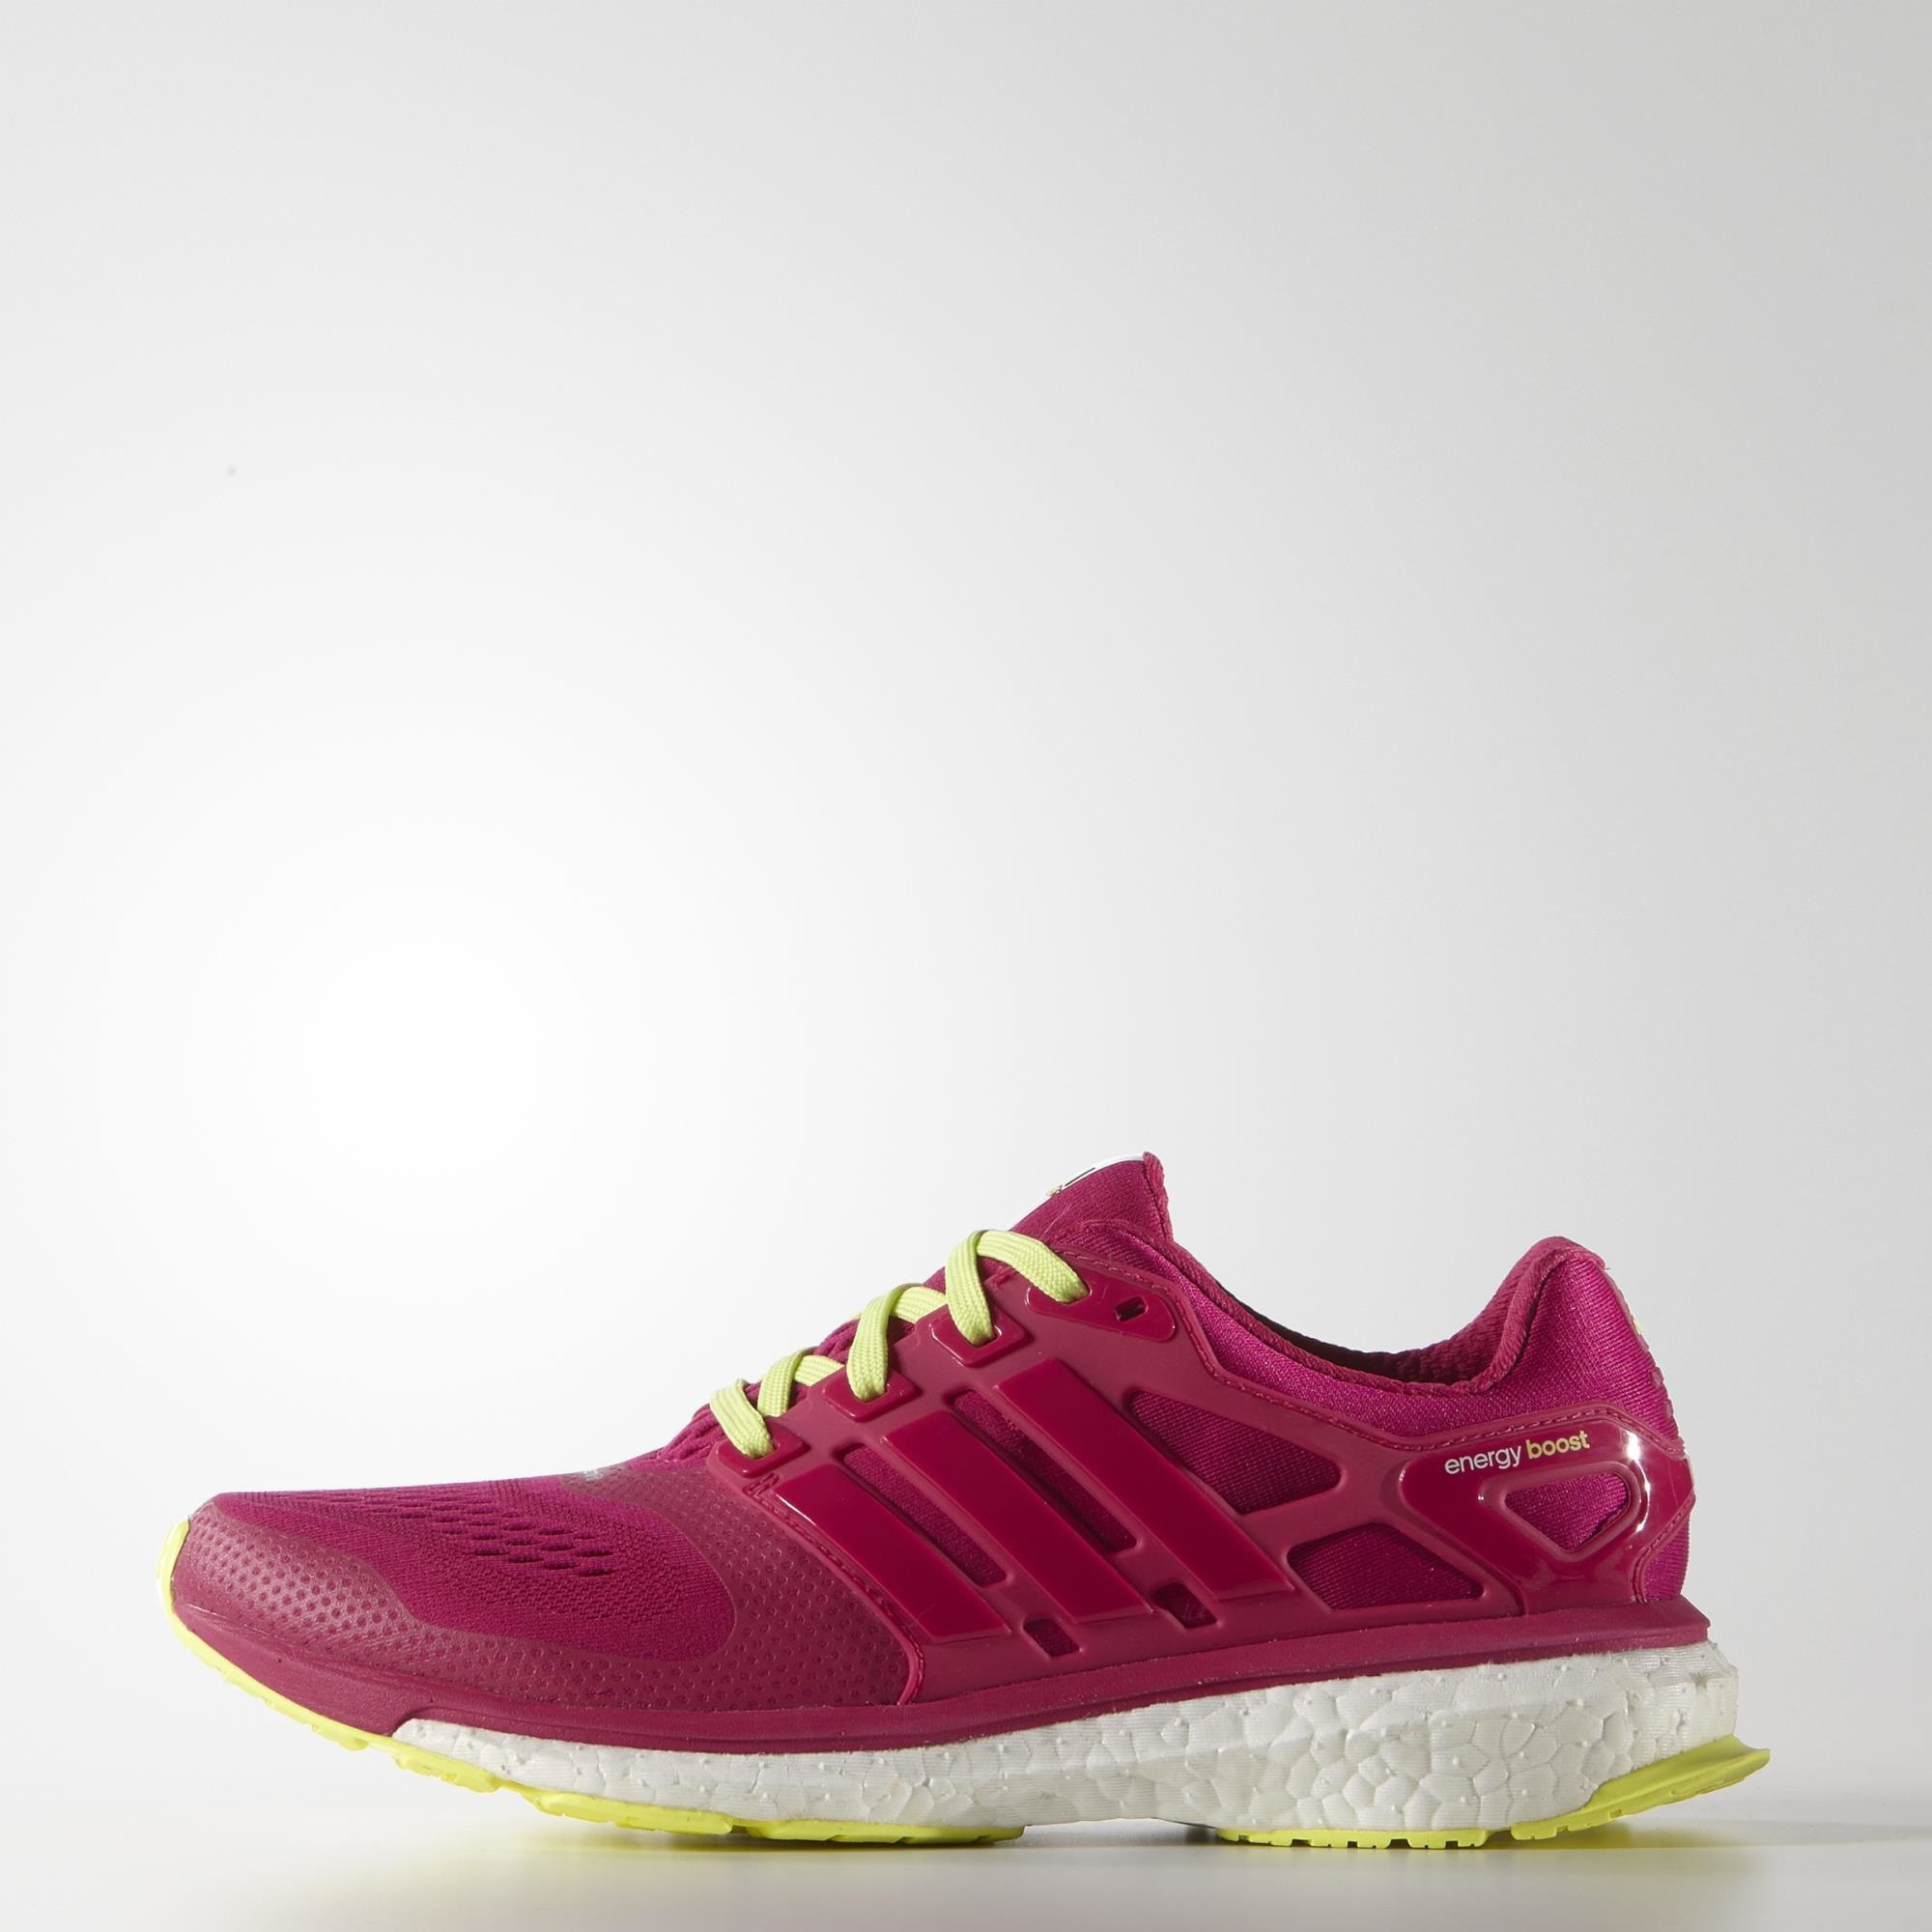 Adidas Energy Boost Mujer Magnífico Adidas Boost 2 Mujer Raquelrecolons Of 42  Perfecto Adidas Energy Boost Mujer